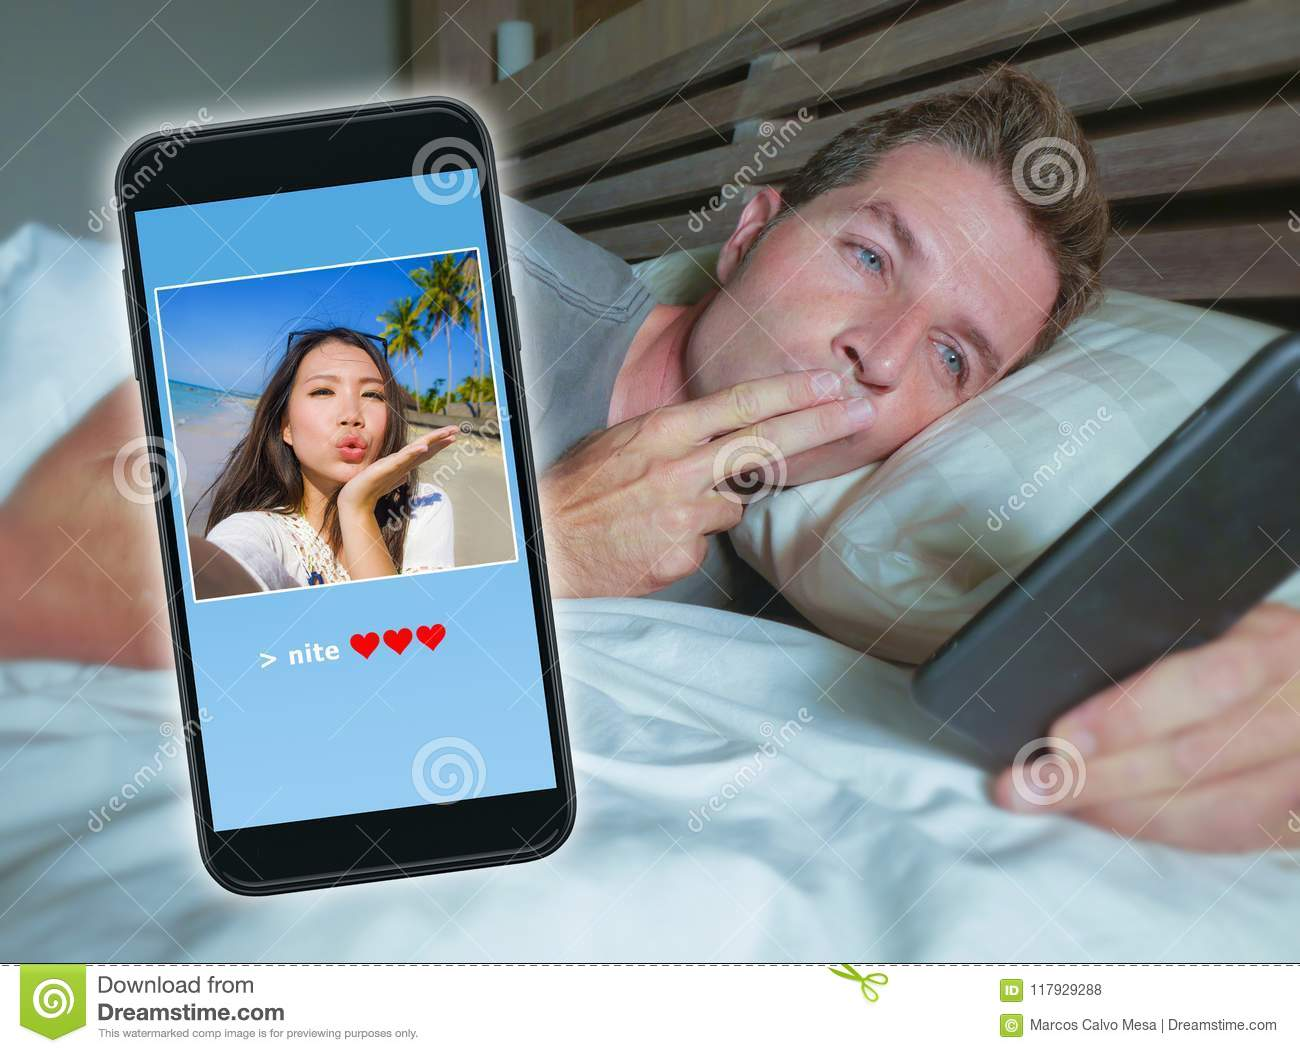 Man Lying On Bed Sending Good Night Kiss Text With Mobile Phone